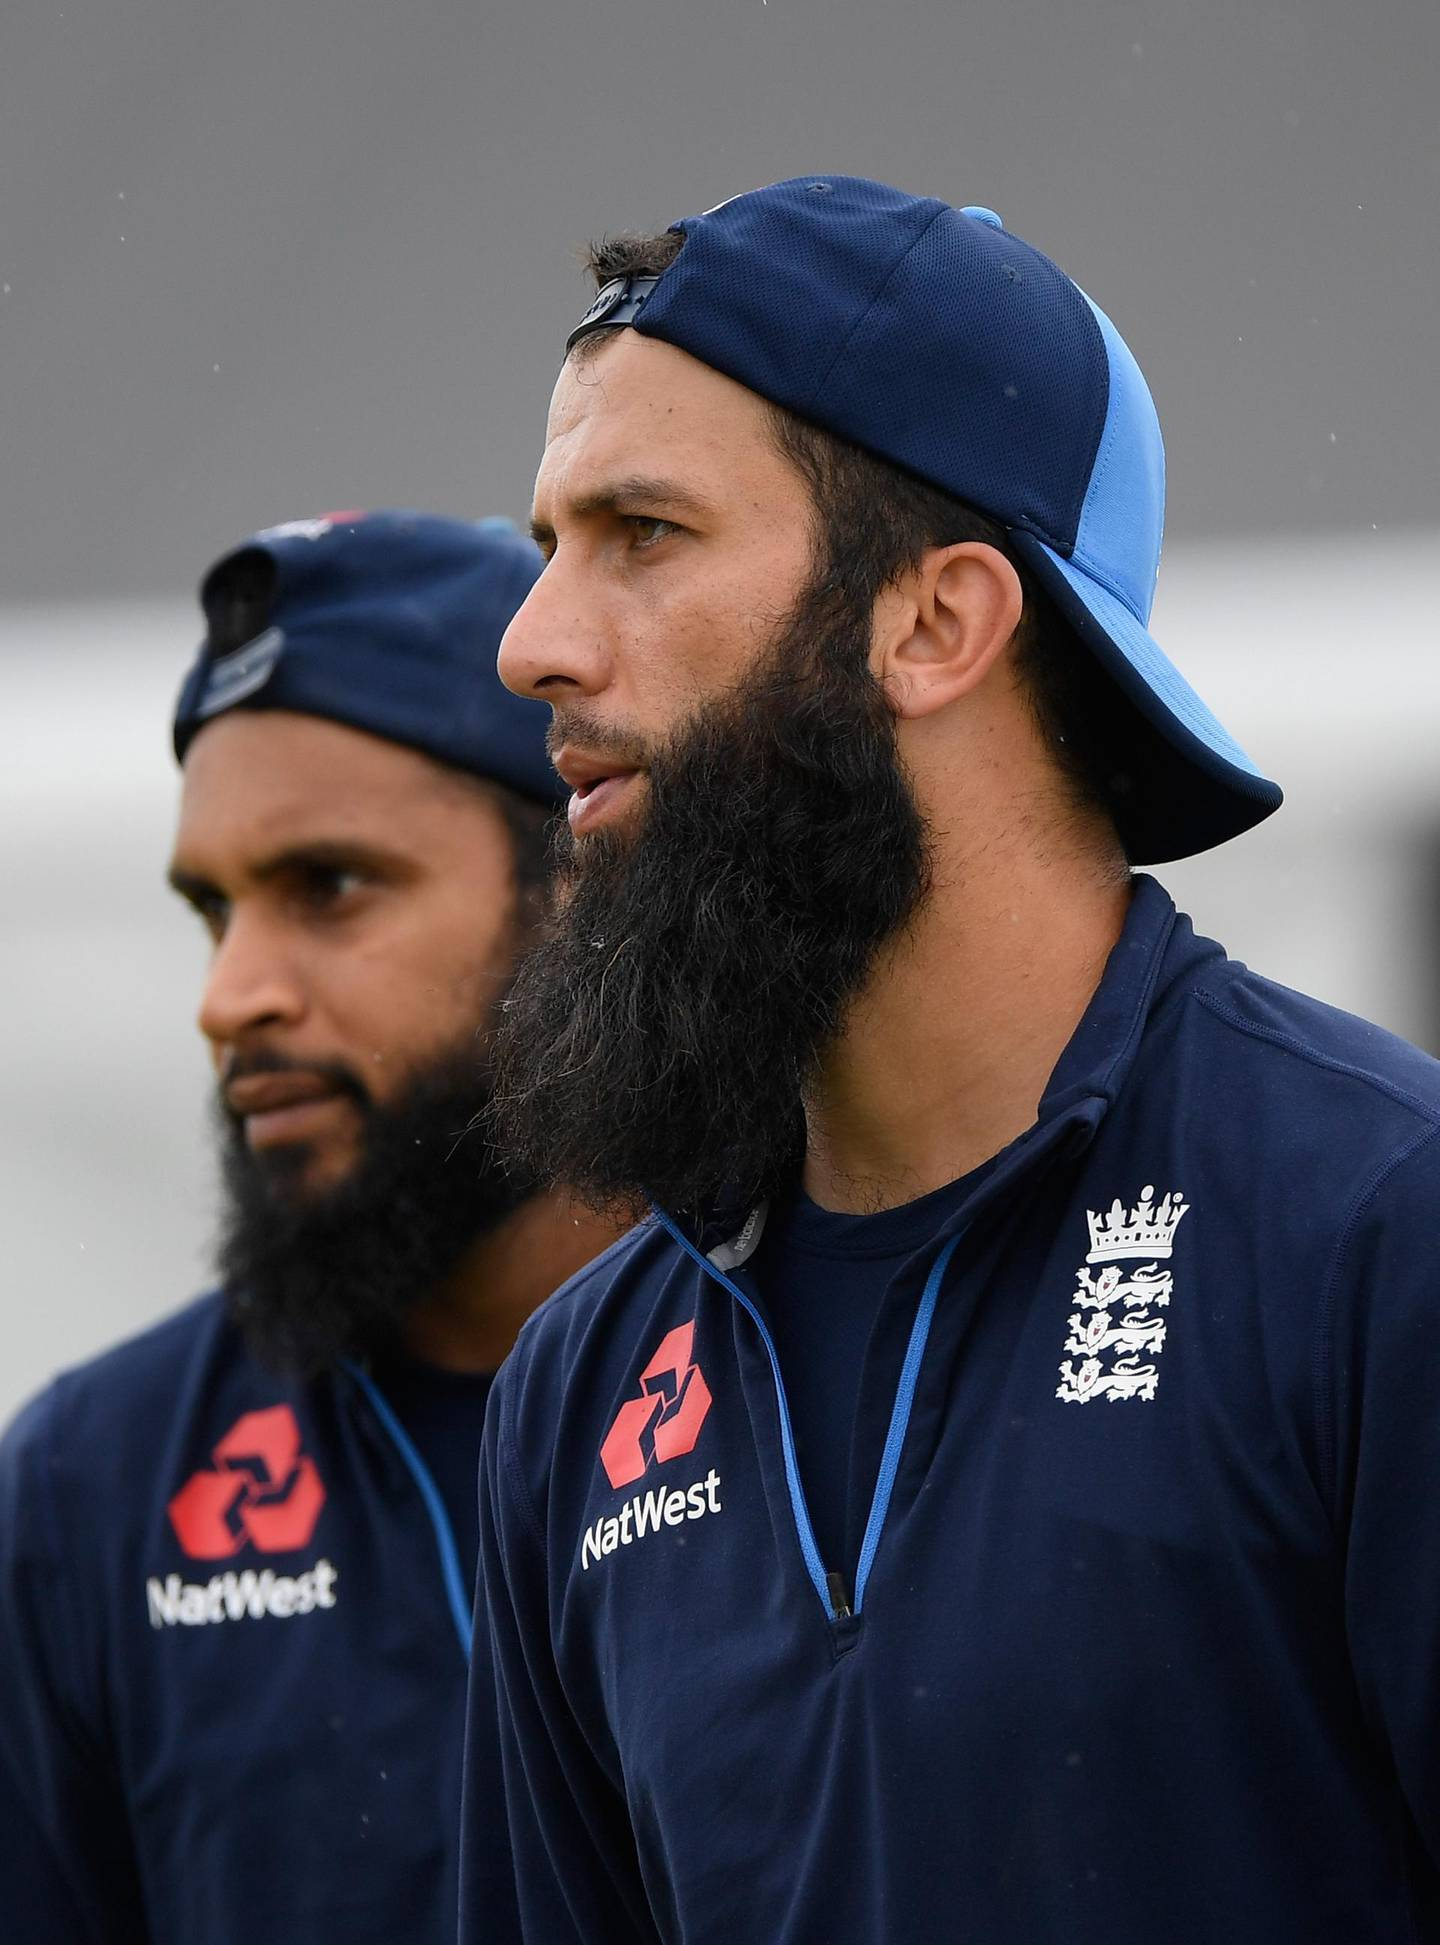 TAURANGA, NEW ZEALAND - FEBRUARY 27:  England spinners Adil Rashid (l) and Moeen Ali look on during nets ahead of the 2nd ODI at the Bay Oval on February 27, 2018 in Tauranga, New Zealand.  (Photo by Stu Forster/Getty Images)